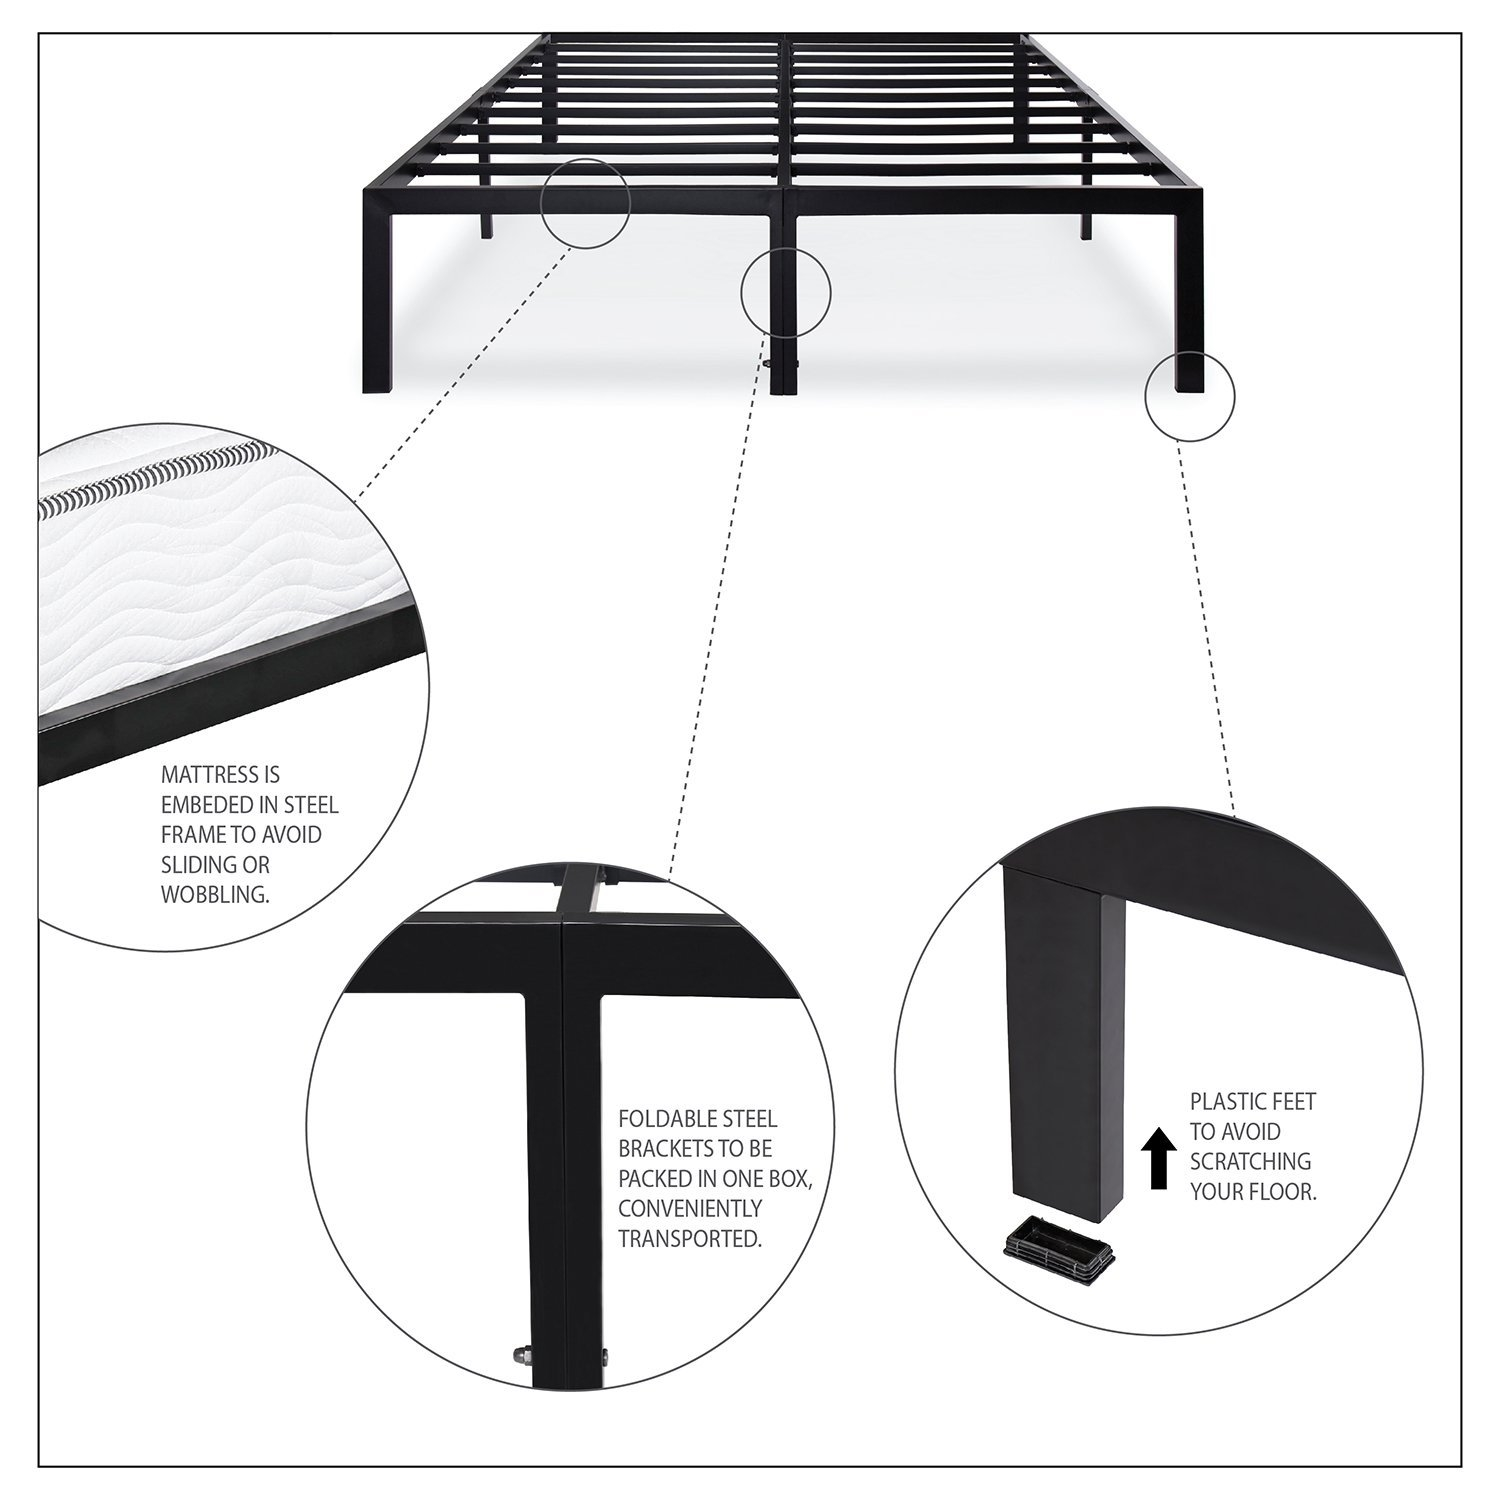 King size Sturdy Metal Platform Bed Frame Holds up to 2200 lbs